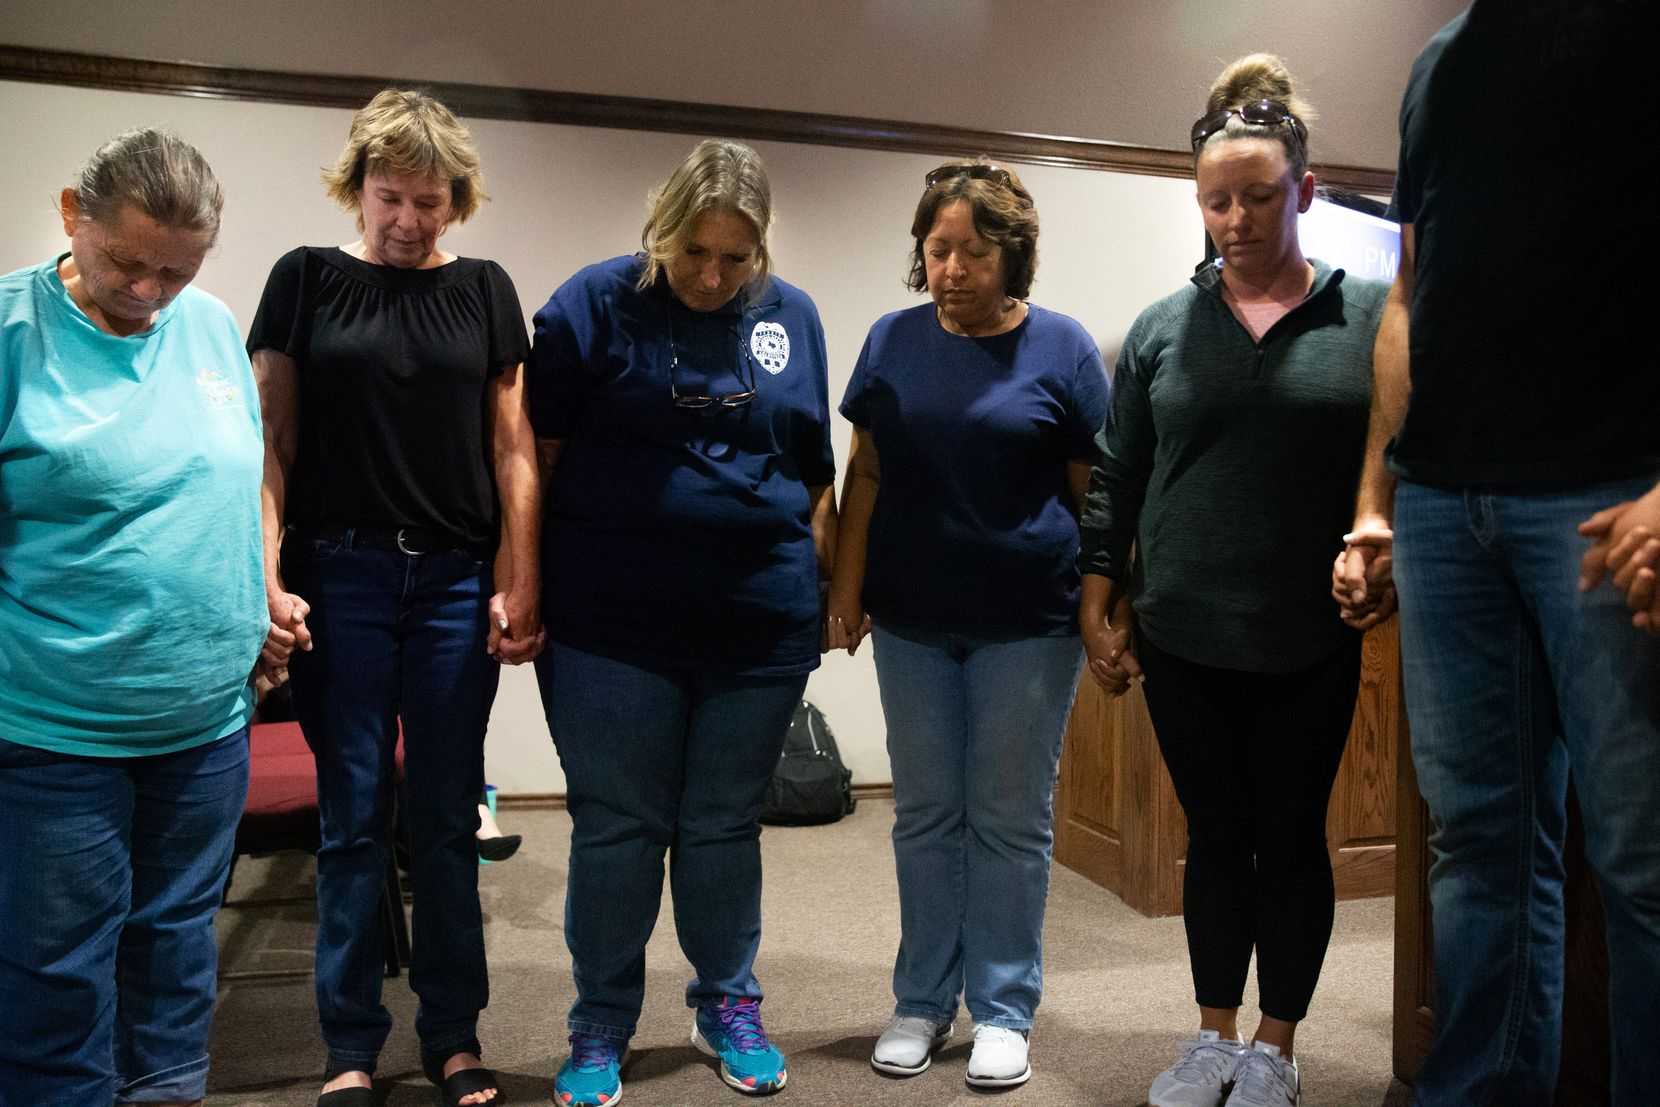 Community members met for prayer before the City Council meeting in Ferris on Oct. 7, 2019. The meeting included an agenda item to determine if the resignation of Police Chief Eddie Salazar would be accepted, and many came out to show support for Salazar. (Lynda M. Gonzalez/The Dallas Morning News)